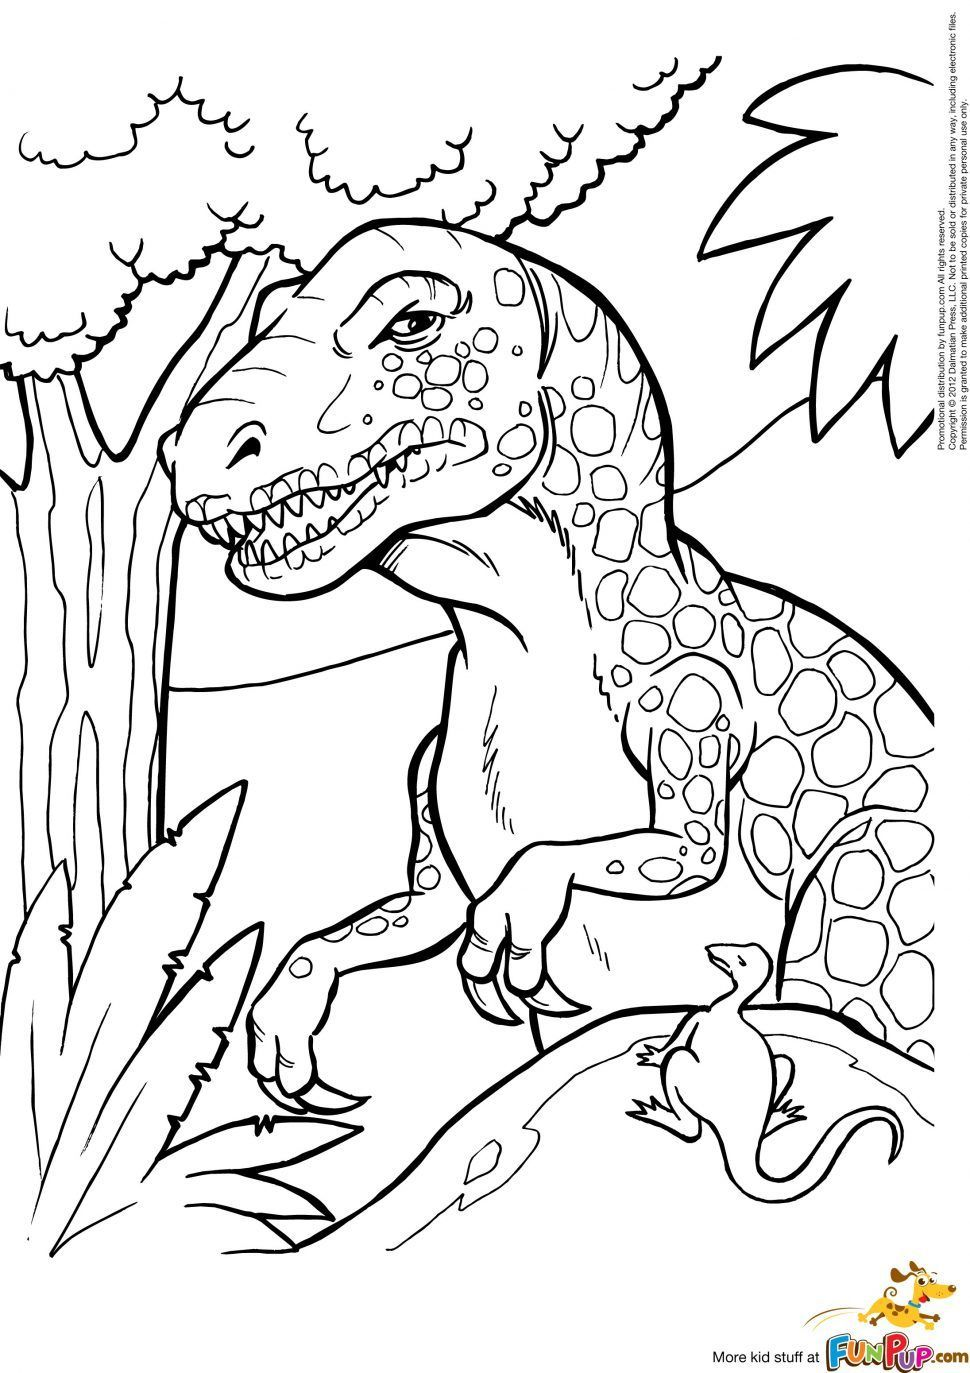 T Rex Coloring Page 13 Jpg 970 1373 Dinosaur Coloring Pages